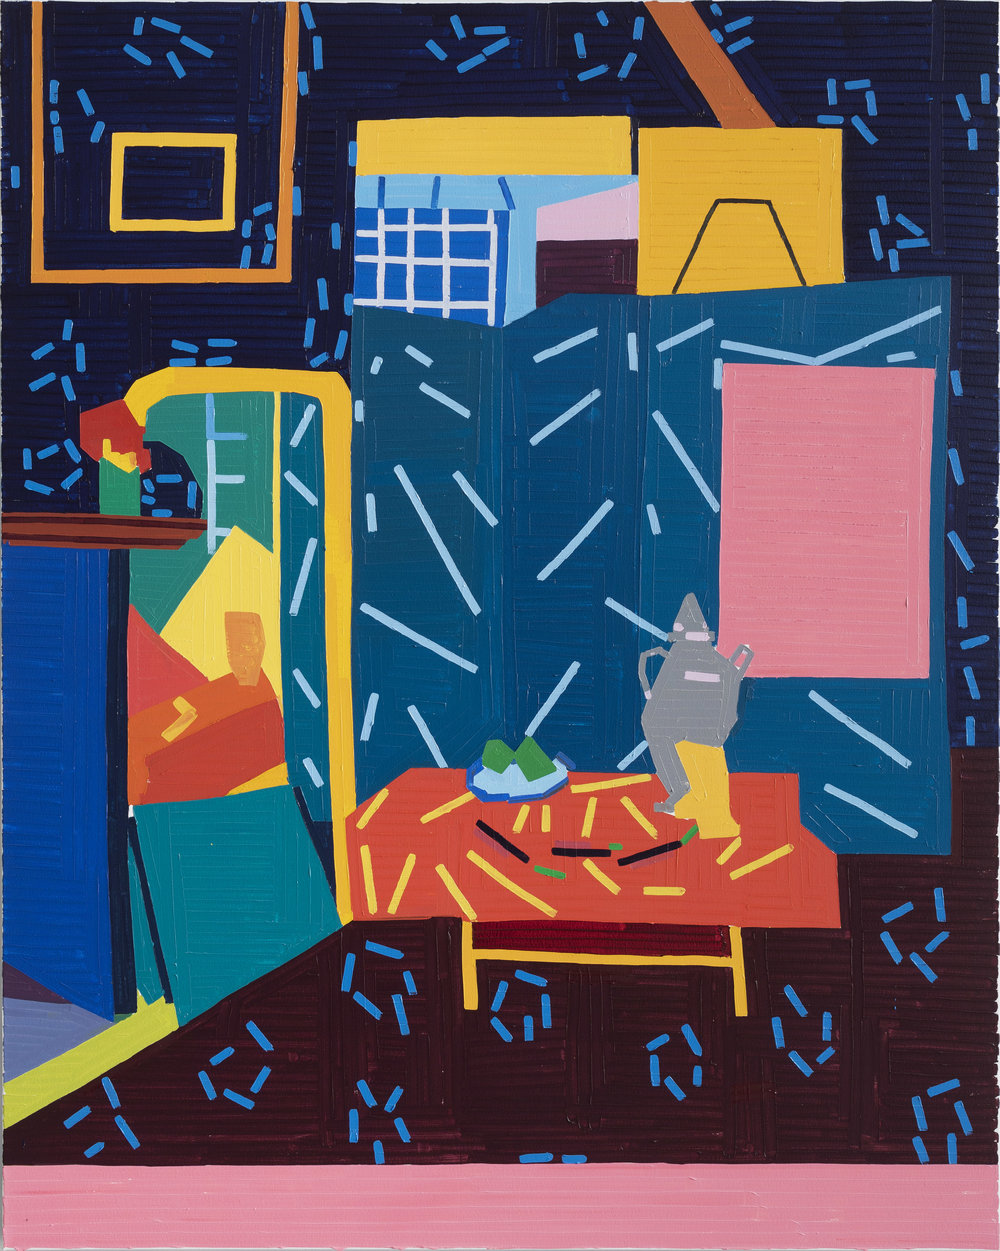 Guy Yanai Still Life with Aubergines II (after Matisse), 2019 oil on canvas (59 1/16 x 47 1/4 in) 150 x 120 cm